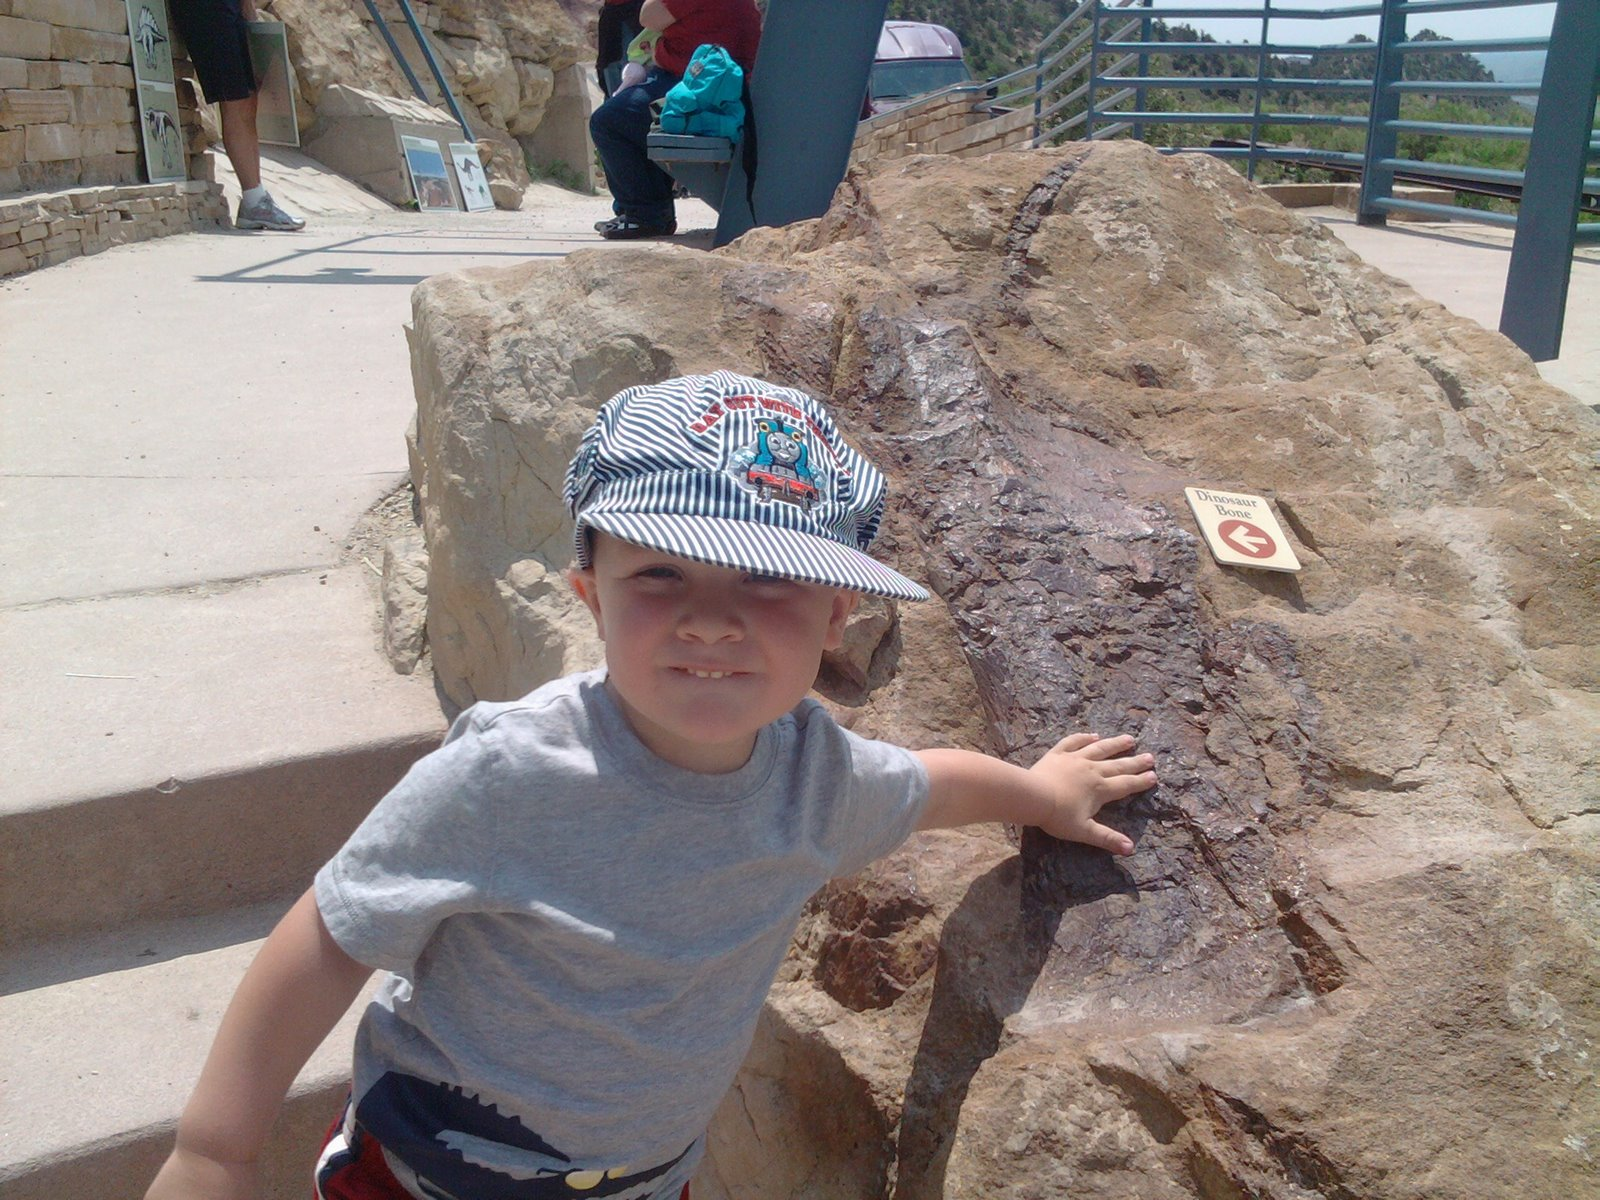 Spencer touching a fossil at Dinosaur Ridge